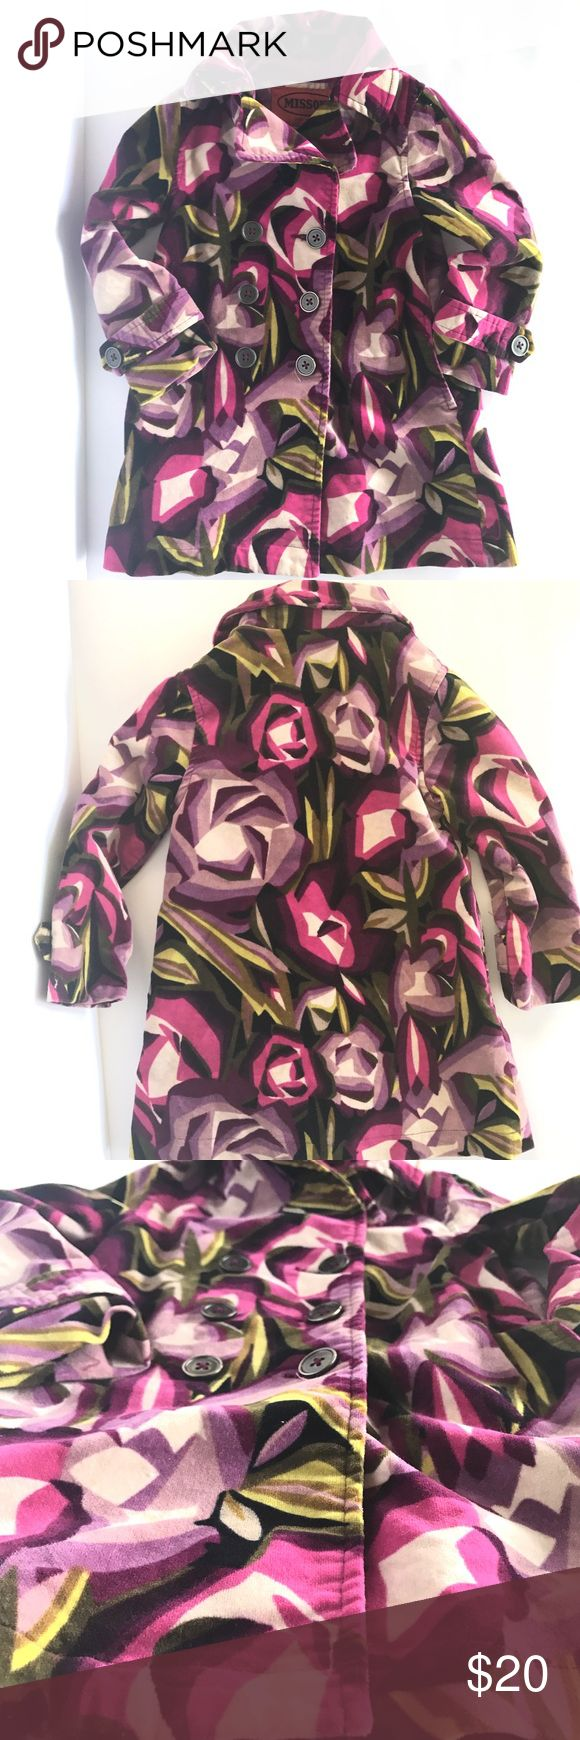 Missoni Toddler Girls Peacoat Missoni Toddler Girls Peacoat, Size M (18-24months), Beautiful Art Deco Bright and Bold, Purple, Pink, and Yellow, perfect for Spring layers. Velvety soft, little imperfections as shown in the last few photos, but not very noticeable, Smoke free home Missoni Jackets & Coats